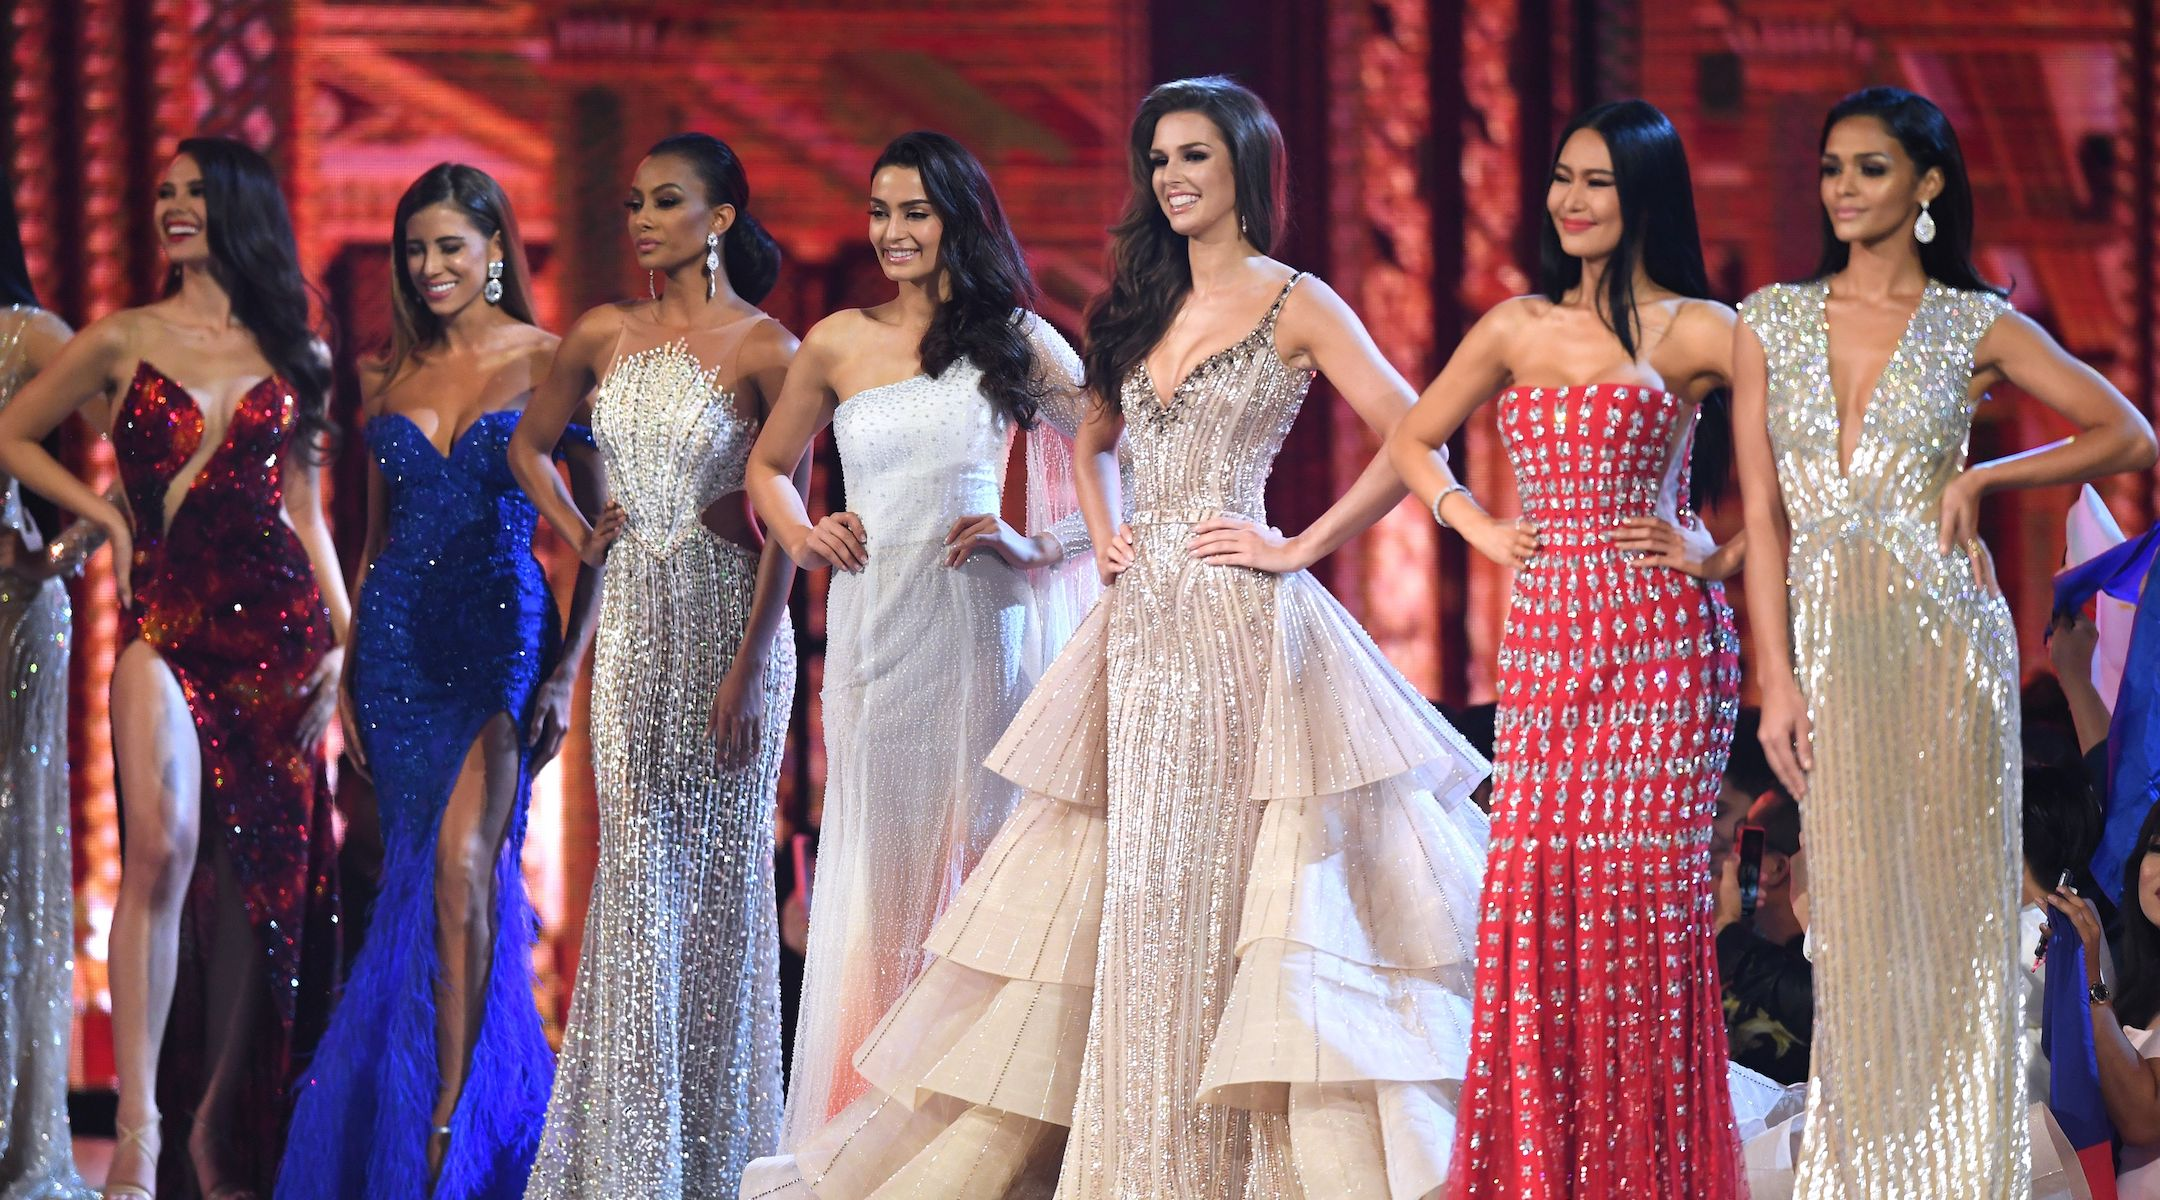 Miss Universe pageant could be coming to Israel - Jewish Telegraphic